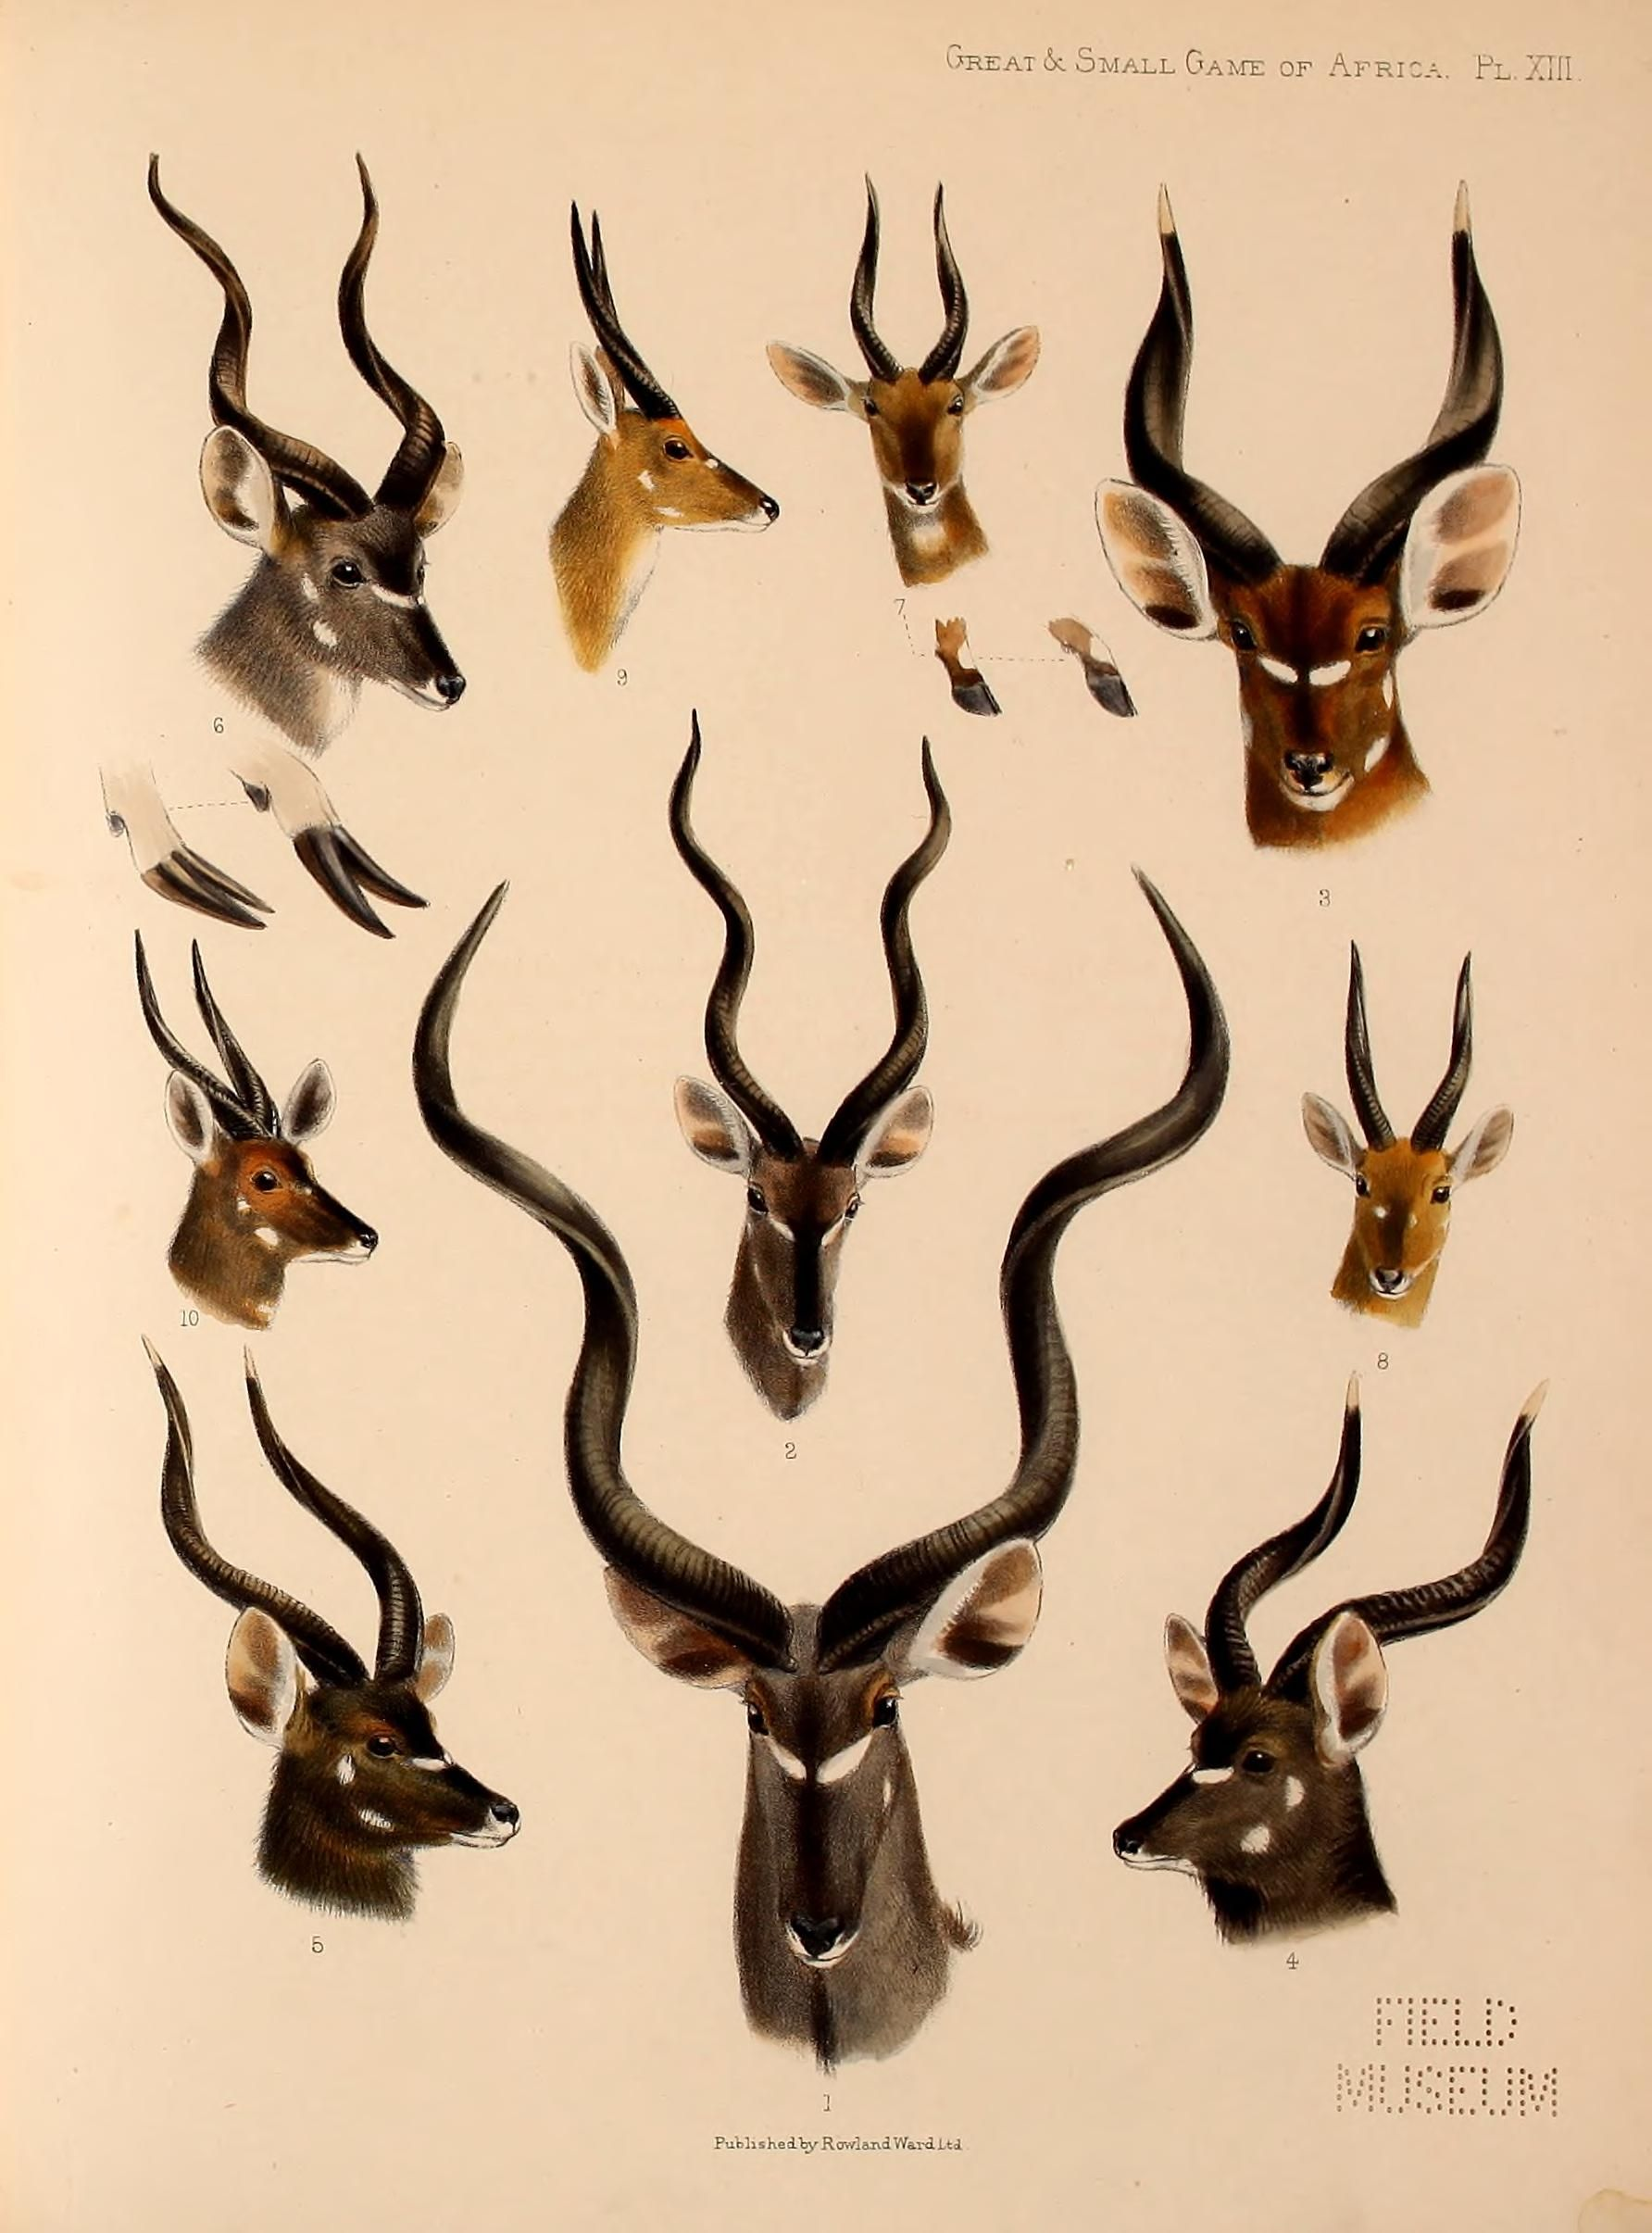 Great & Small Game of Africa from the Field Museum: 1 Greater Kudu